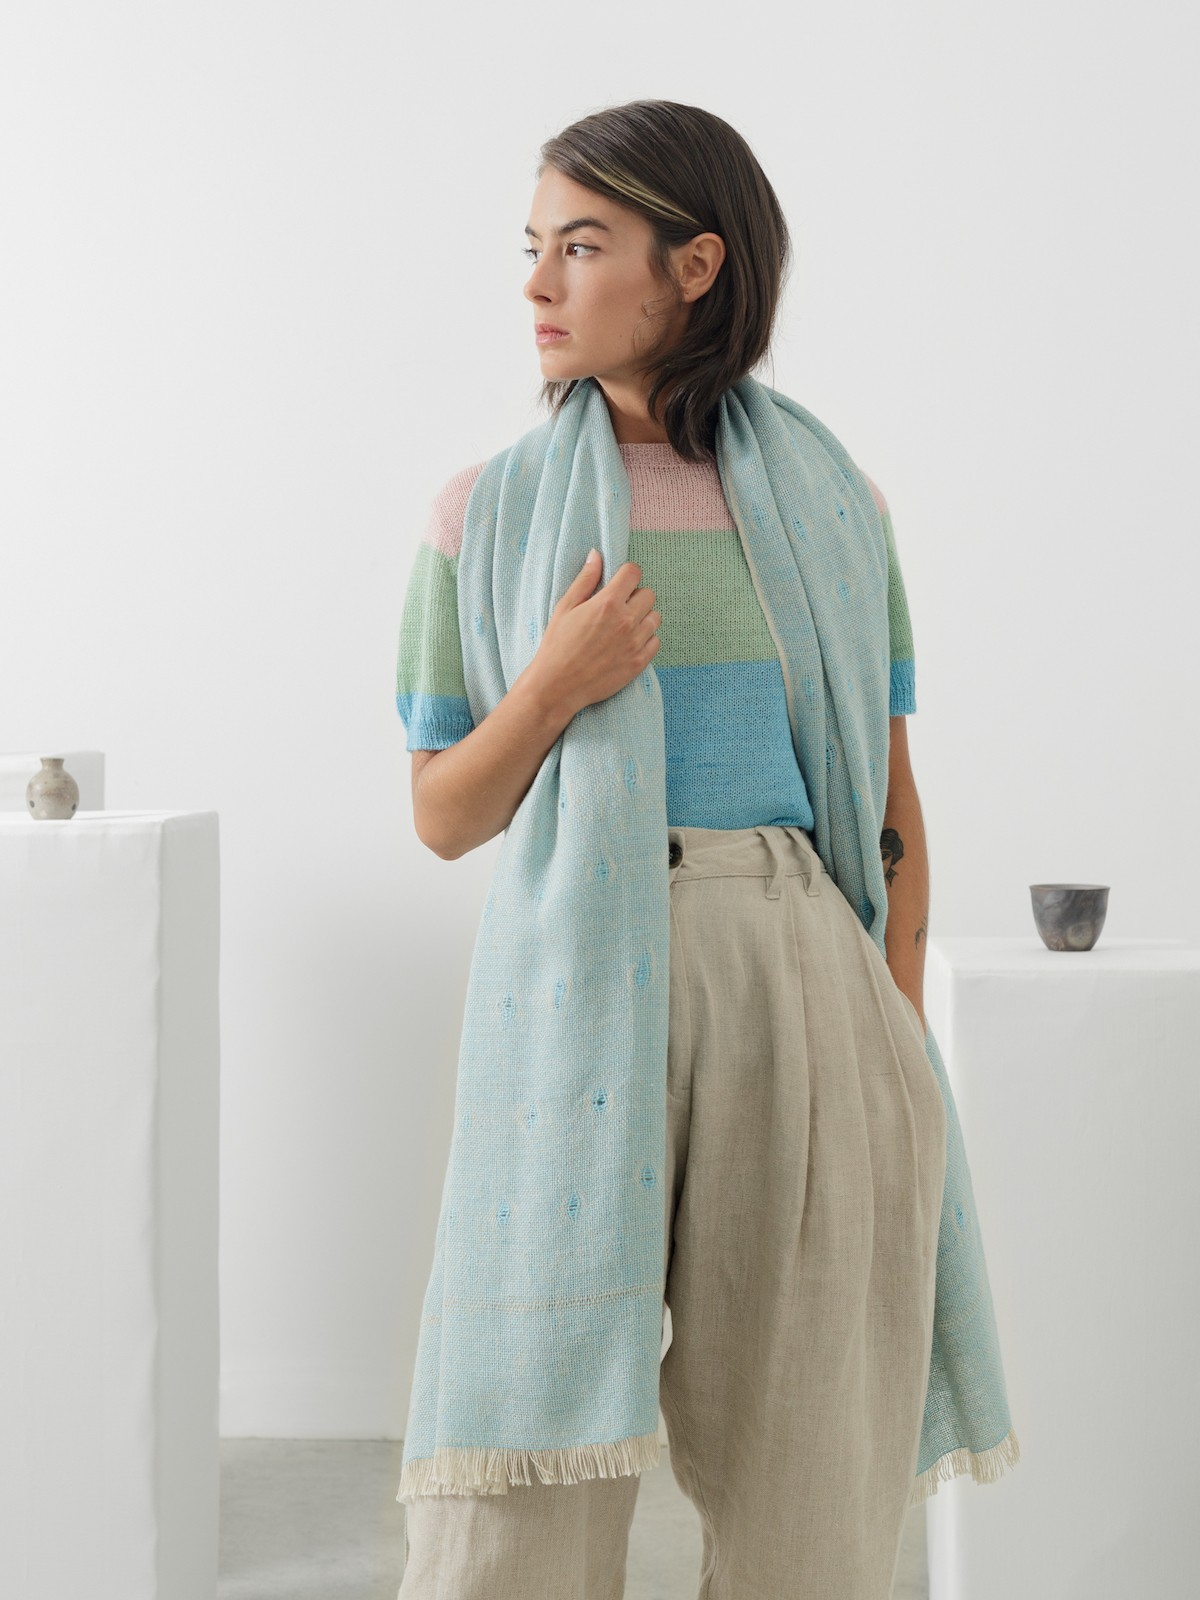 Handloomed scarf Image